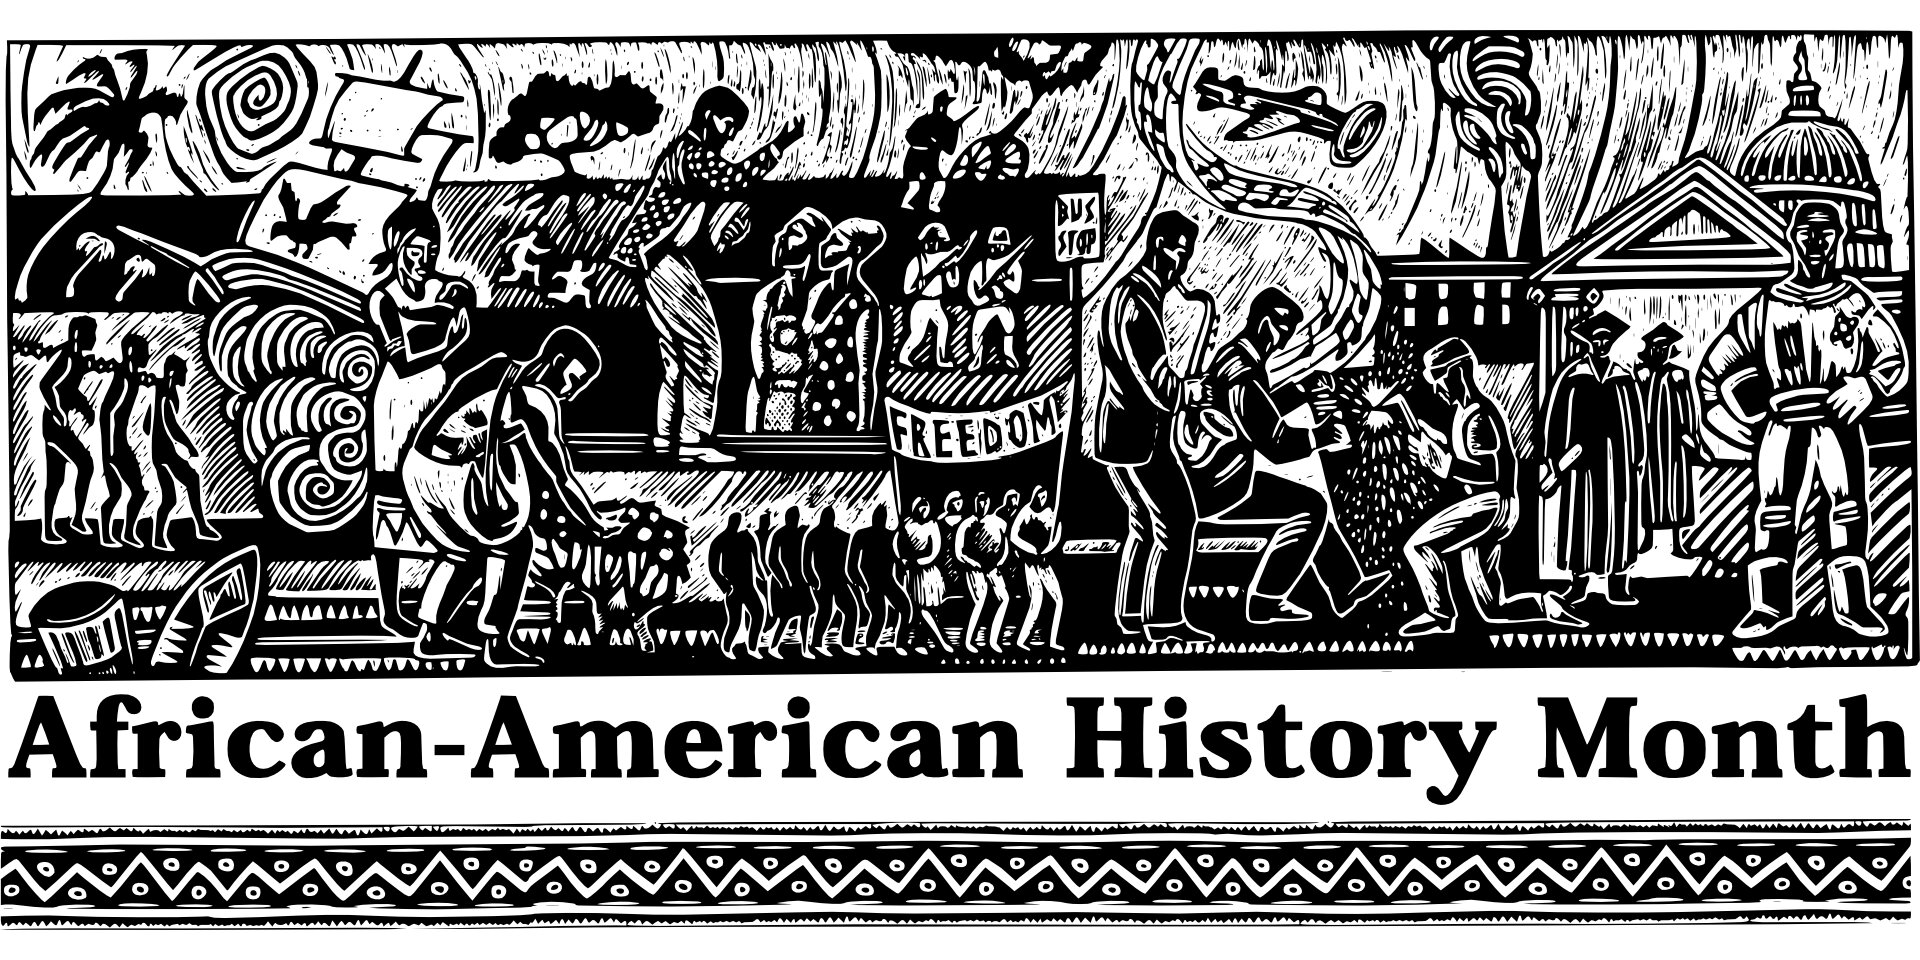 Black History Month Is Not Just A Time To Celebrate Marches And Martyrs